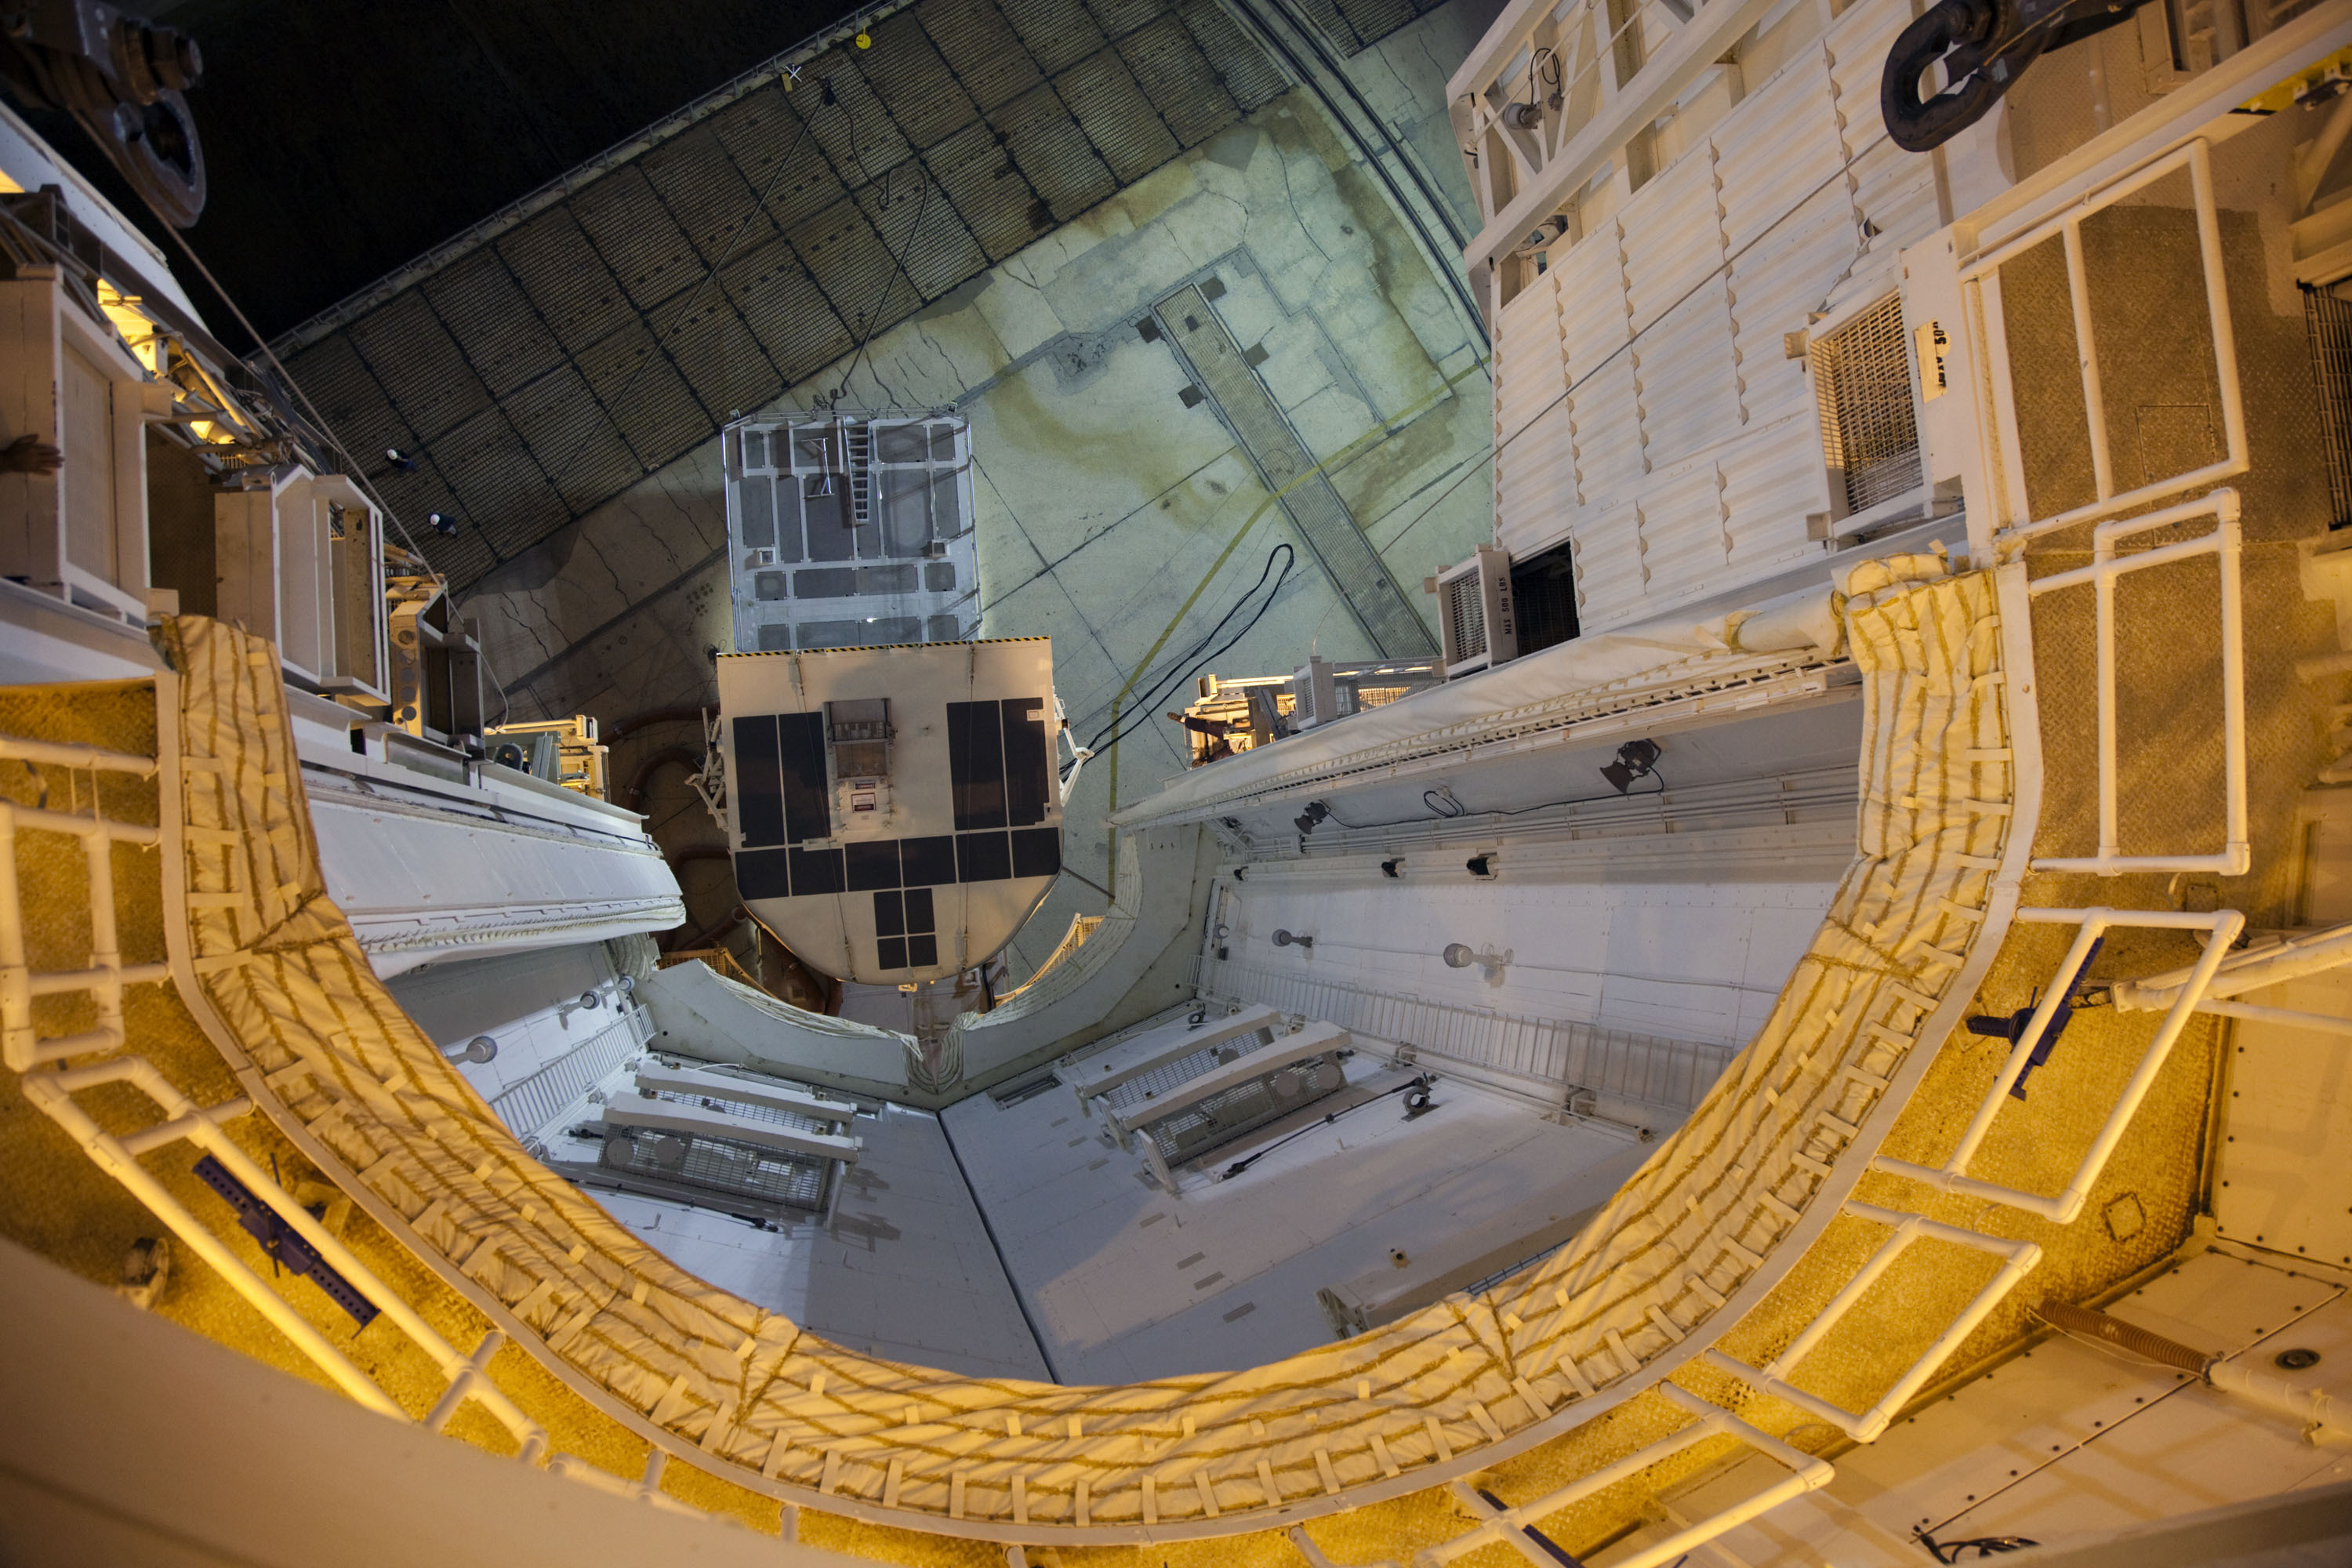 future space station inside - photo #7